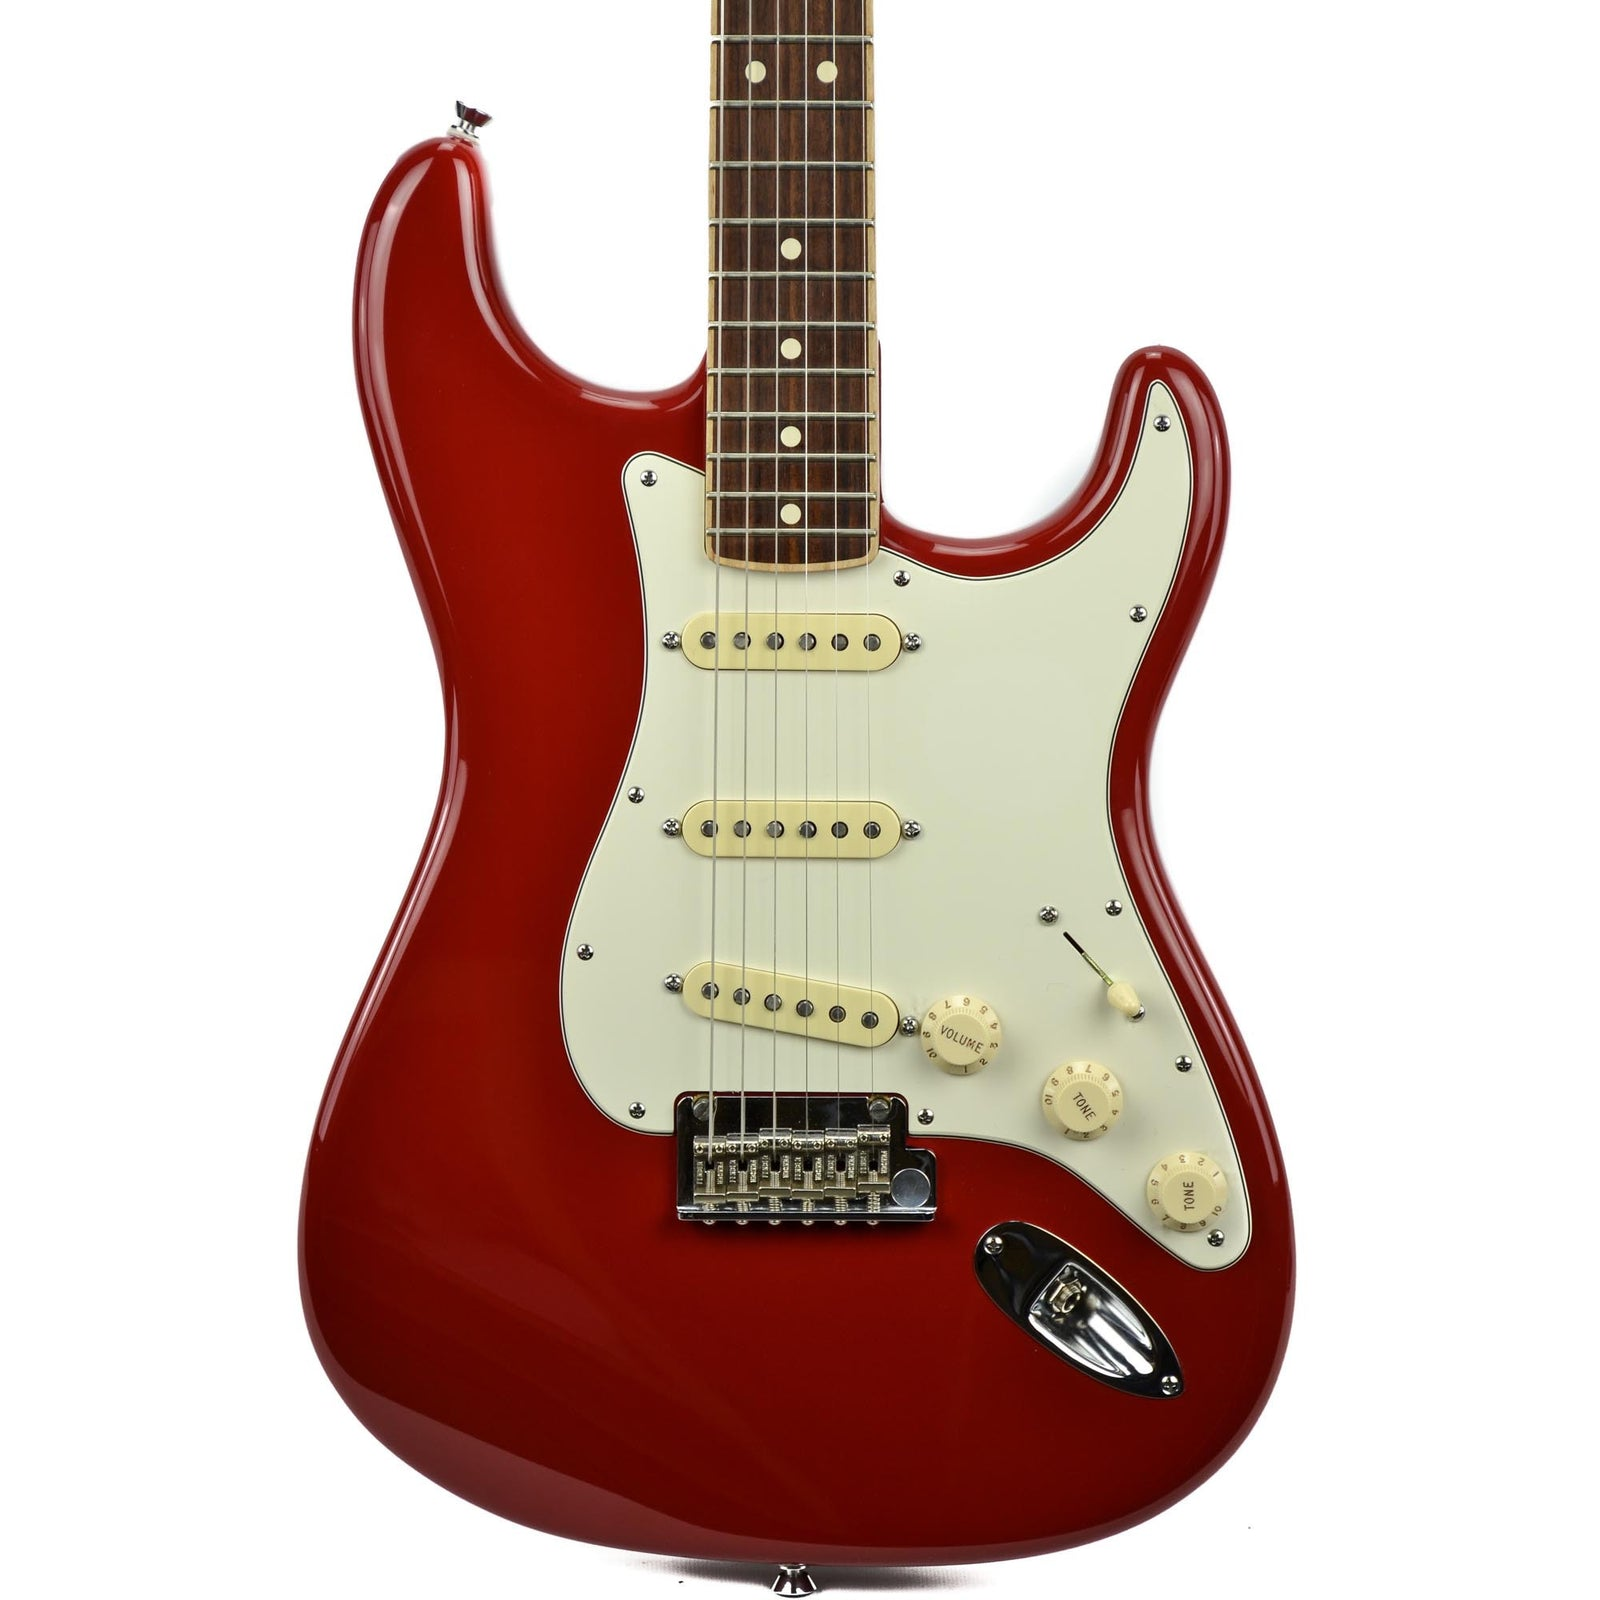 Fender American Standard Stratocaster Channel Bound - Dakota Red